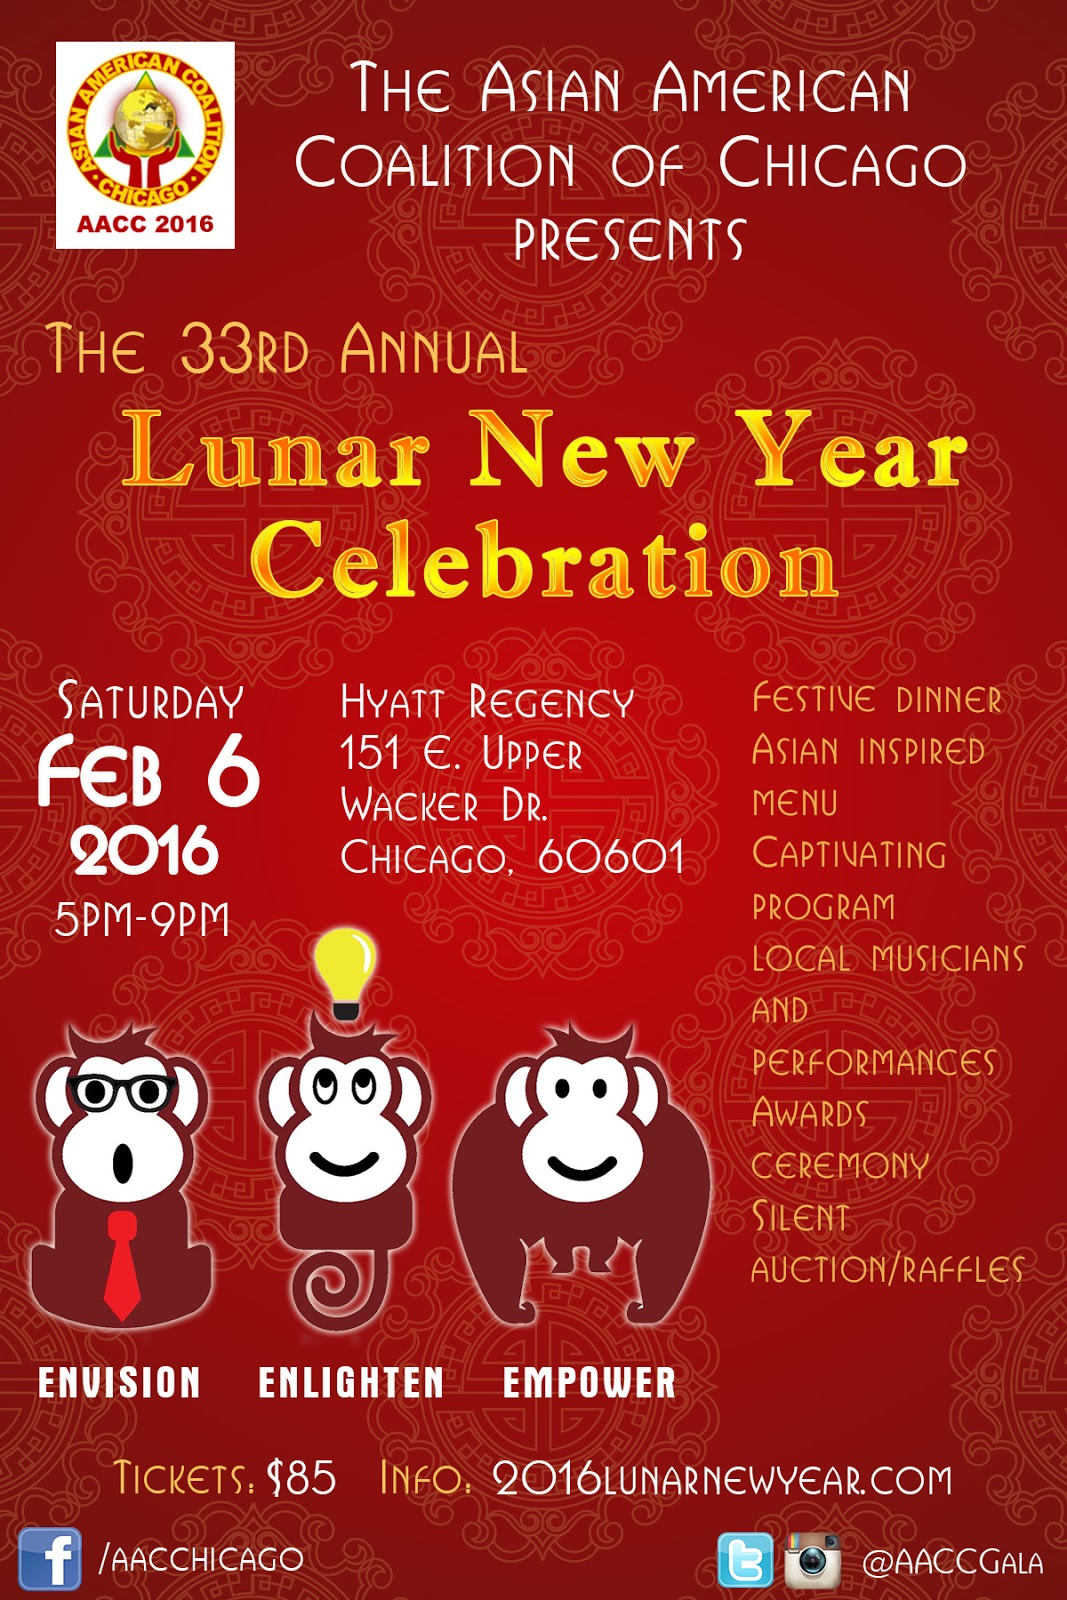 asian american coalition of chicago - When Is Chinese New Year 2016